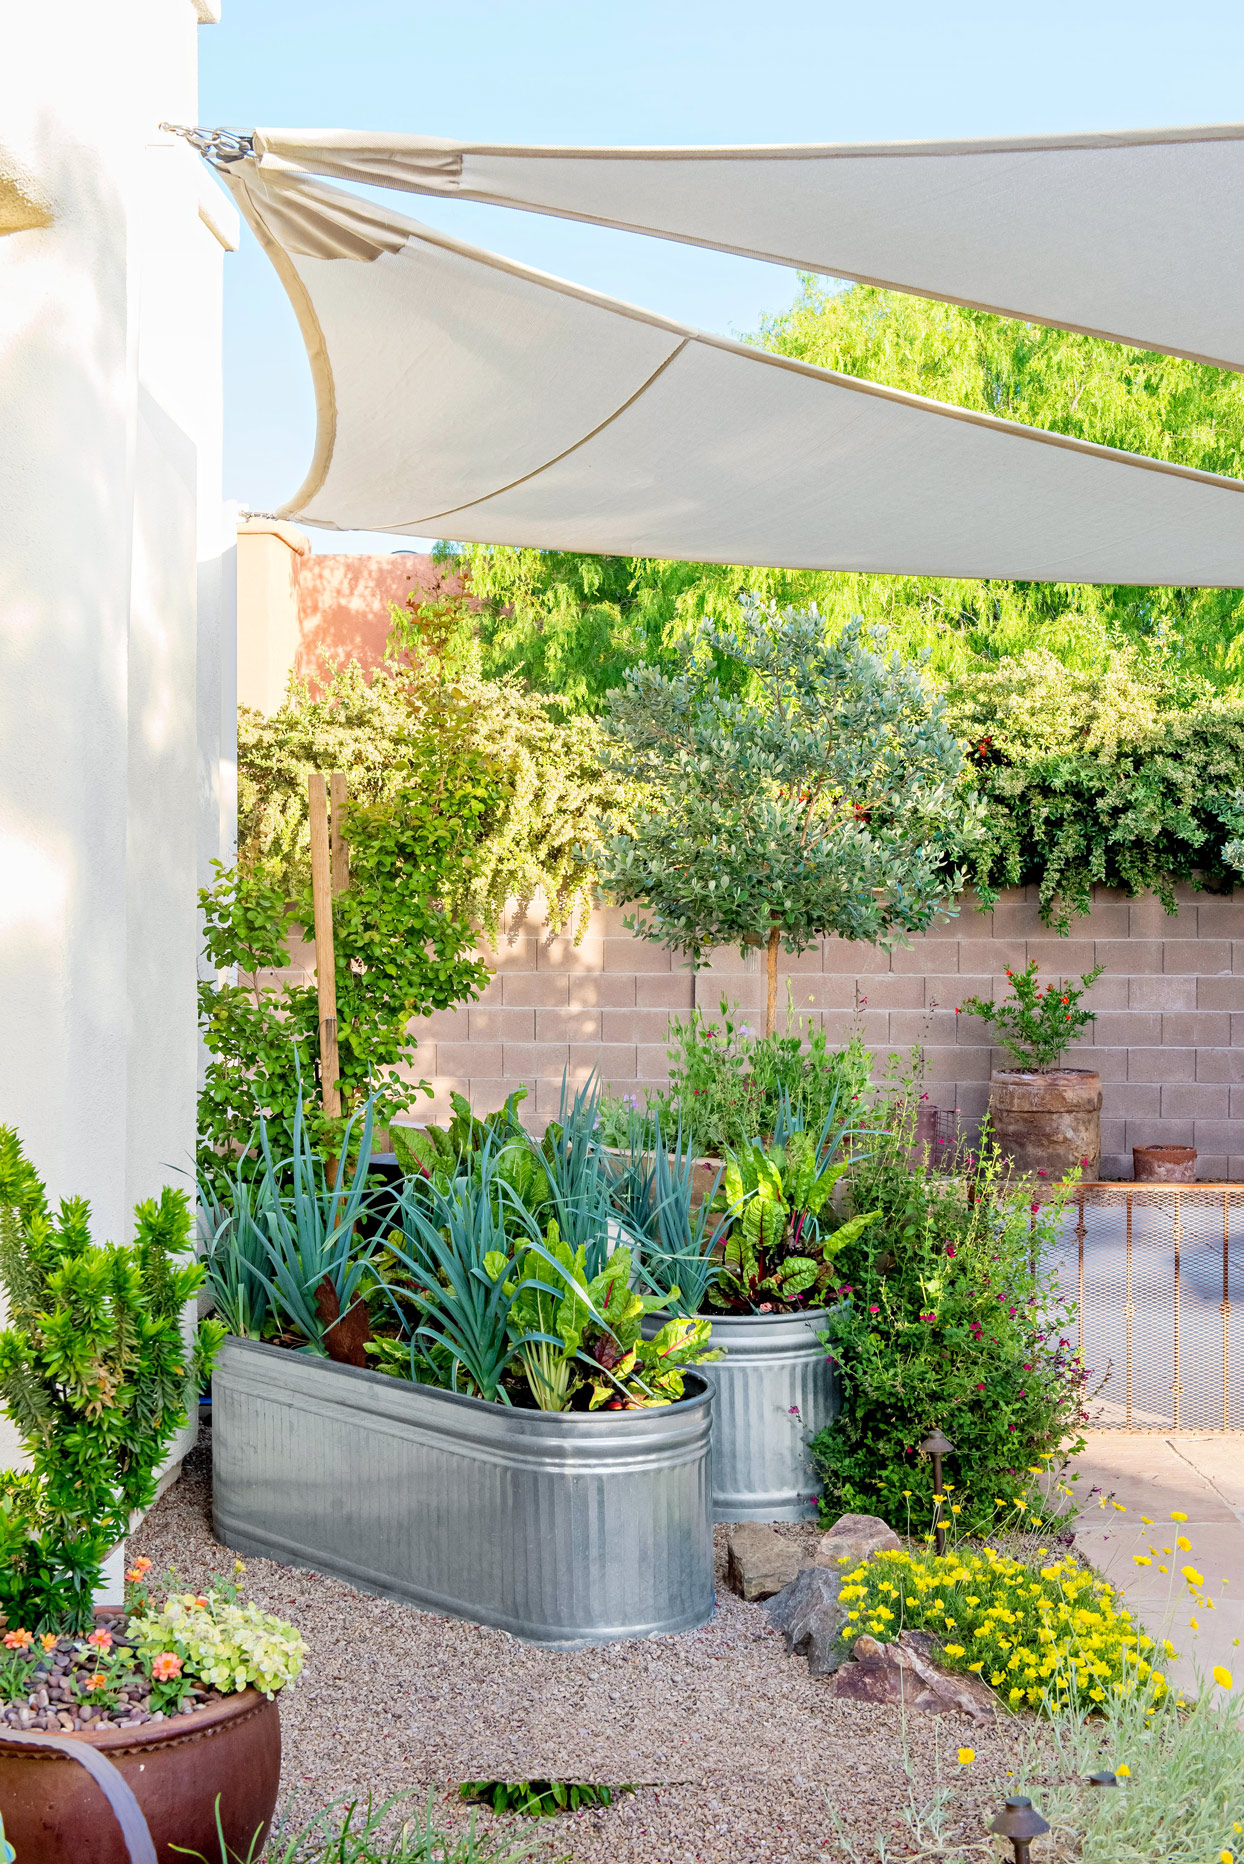 How To Build A Concrete Retaining Wall Better Homes Gardens